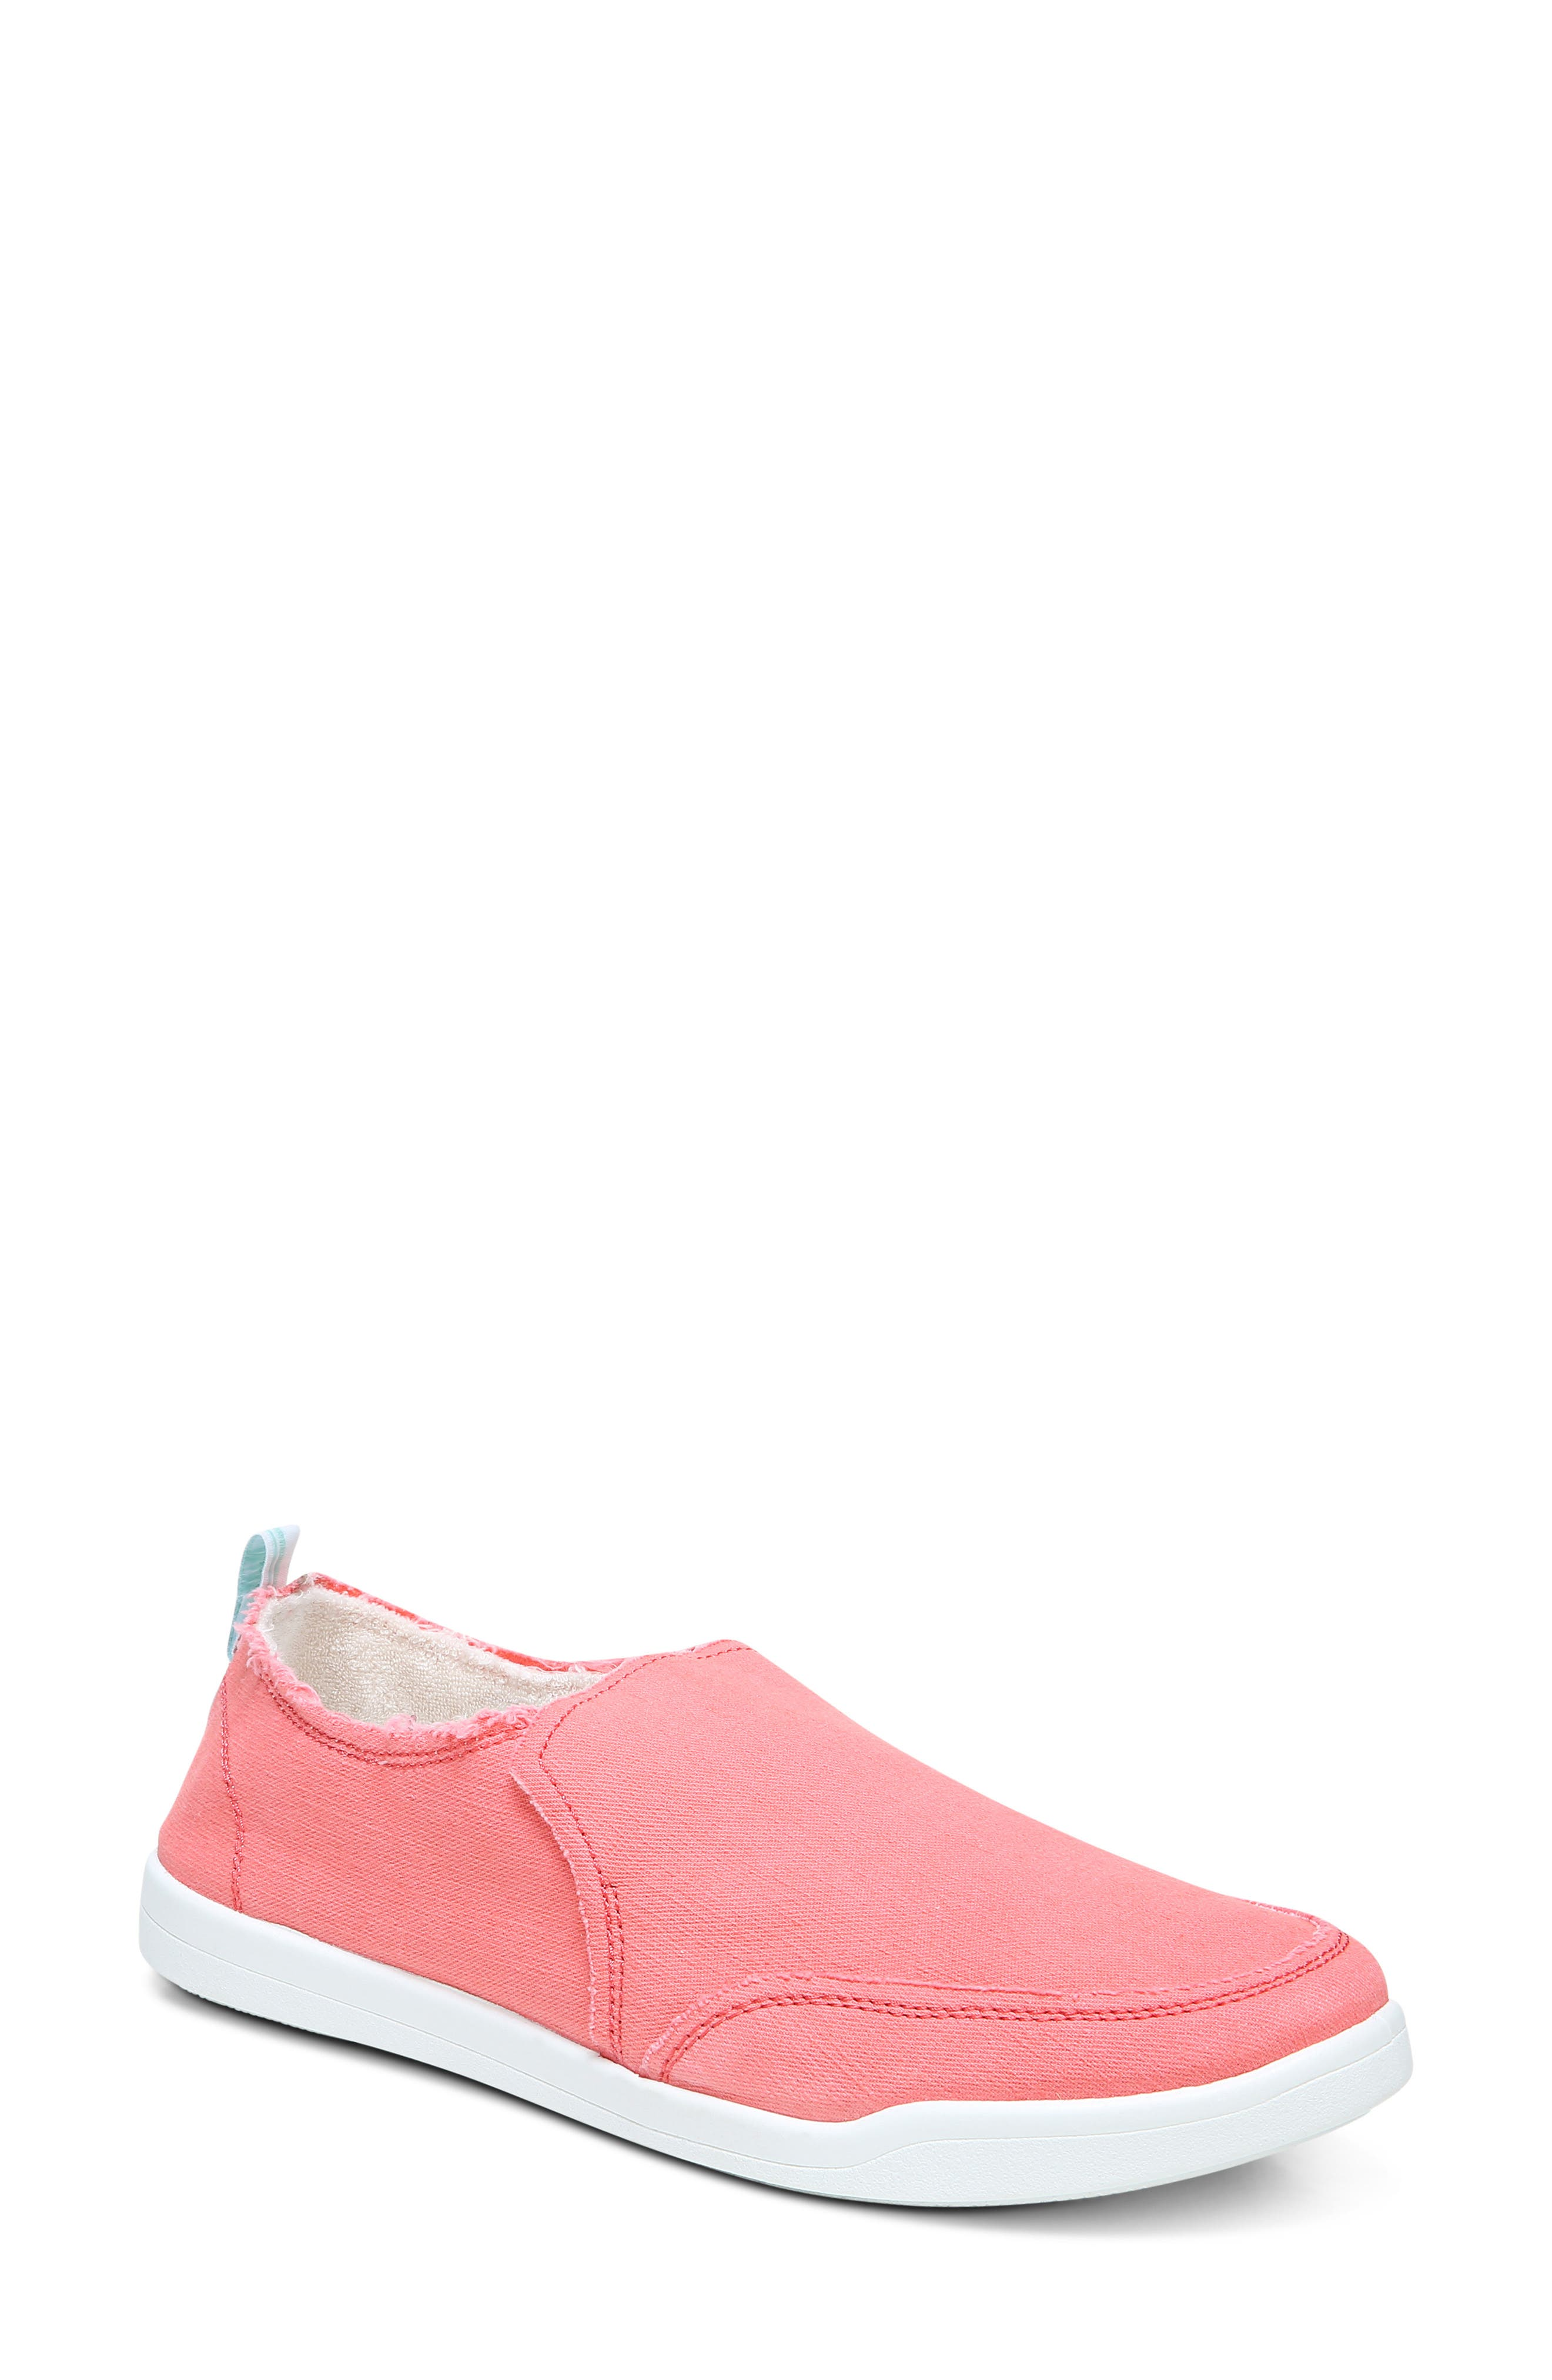 Vionic Canvases BEACH COLLECTION MALIBU SLIP-ON SNEAKER